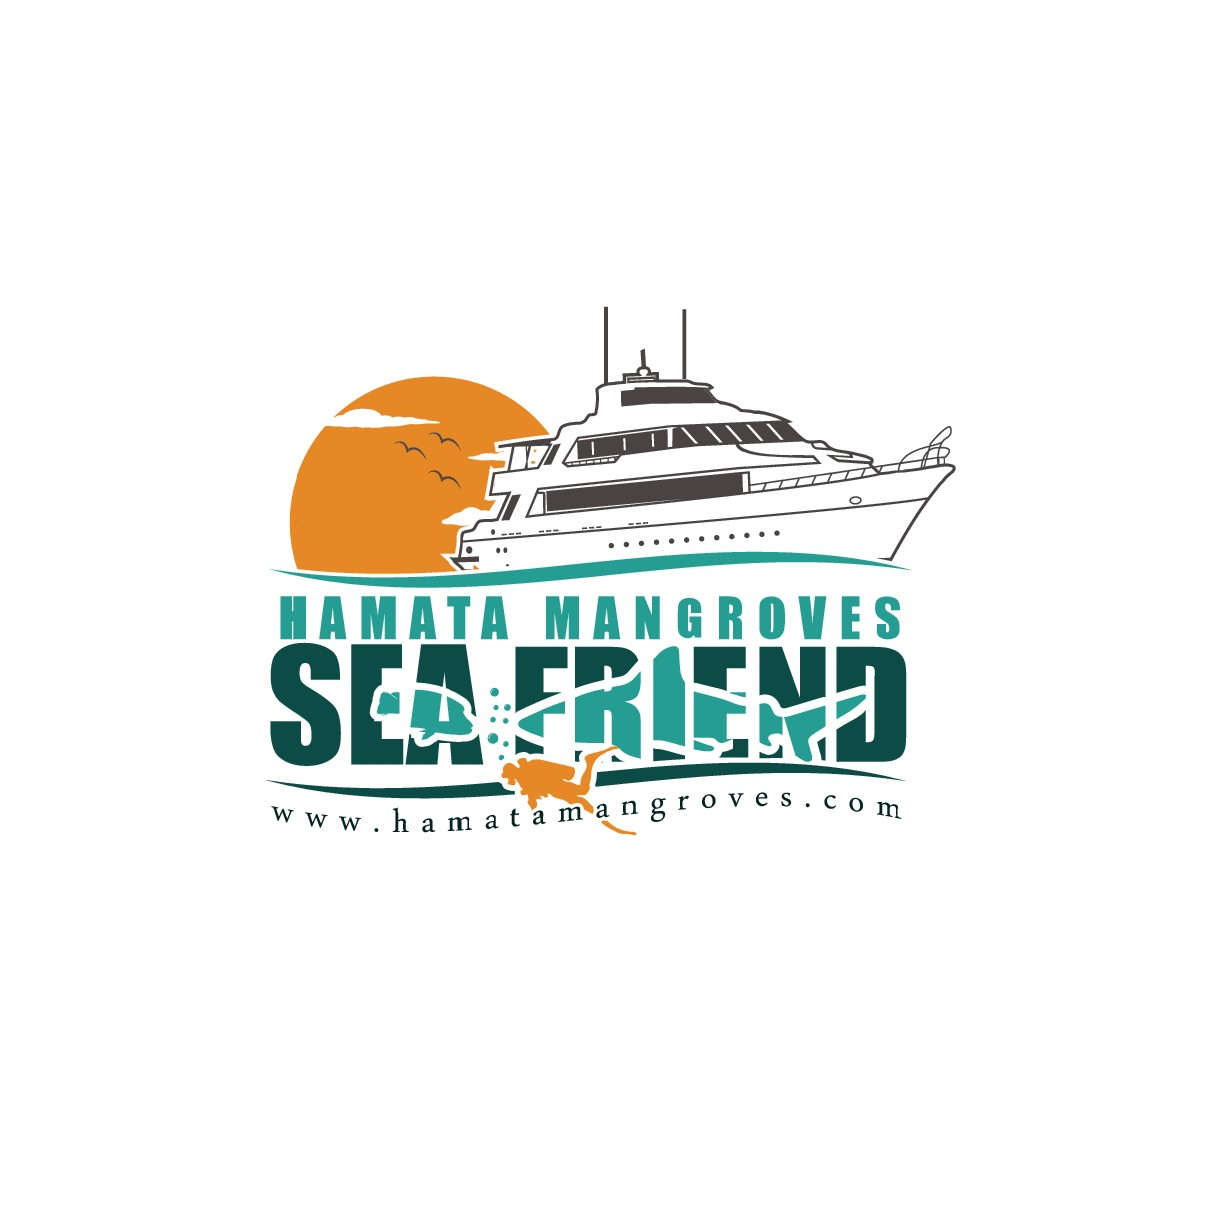 New boat in logo of SeaFriend and Hamata Mangroves